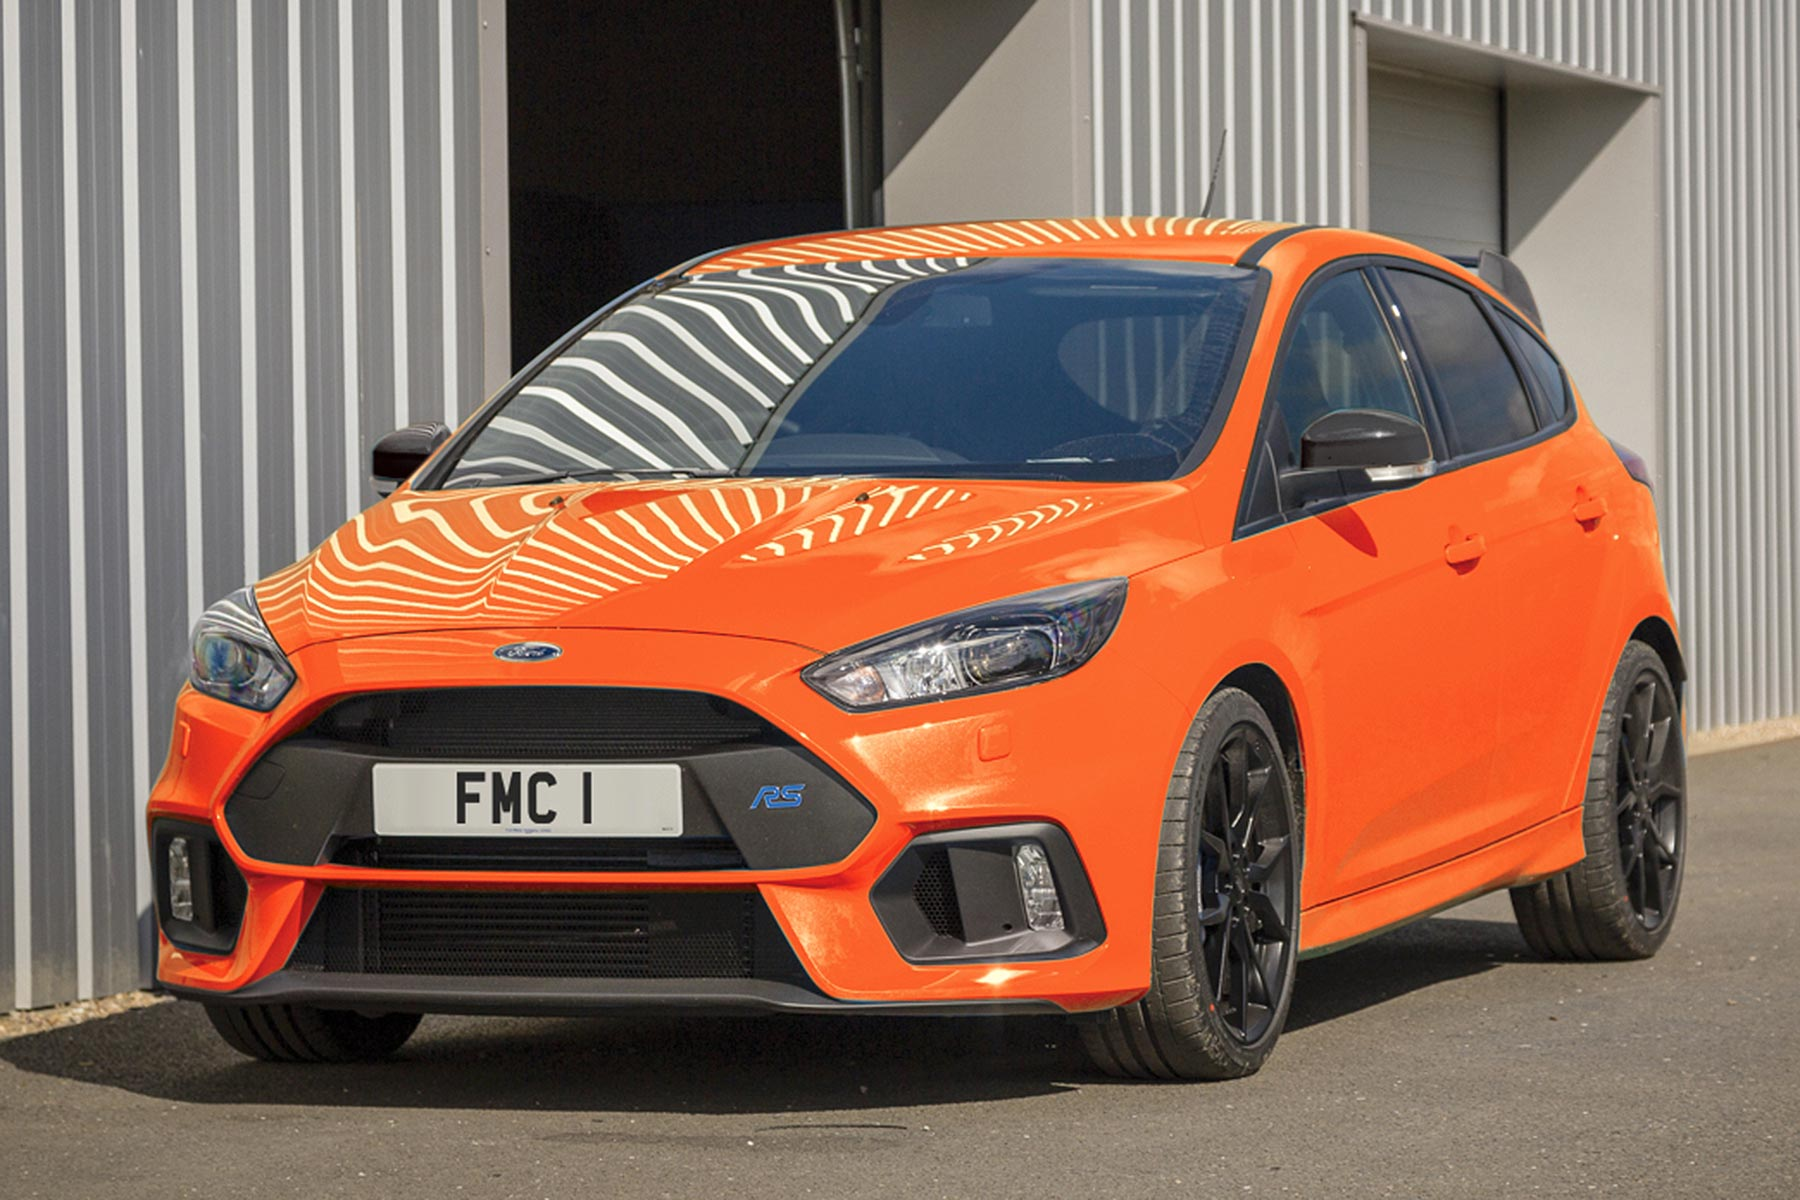 ford focus rs heritage edition is a 39 895 orange crush motoring research. Black Bedroom Furniture Sets. Home Design Ideas